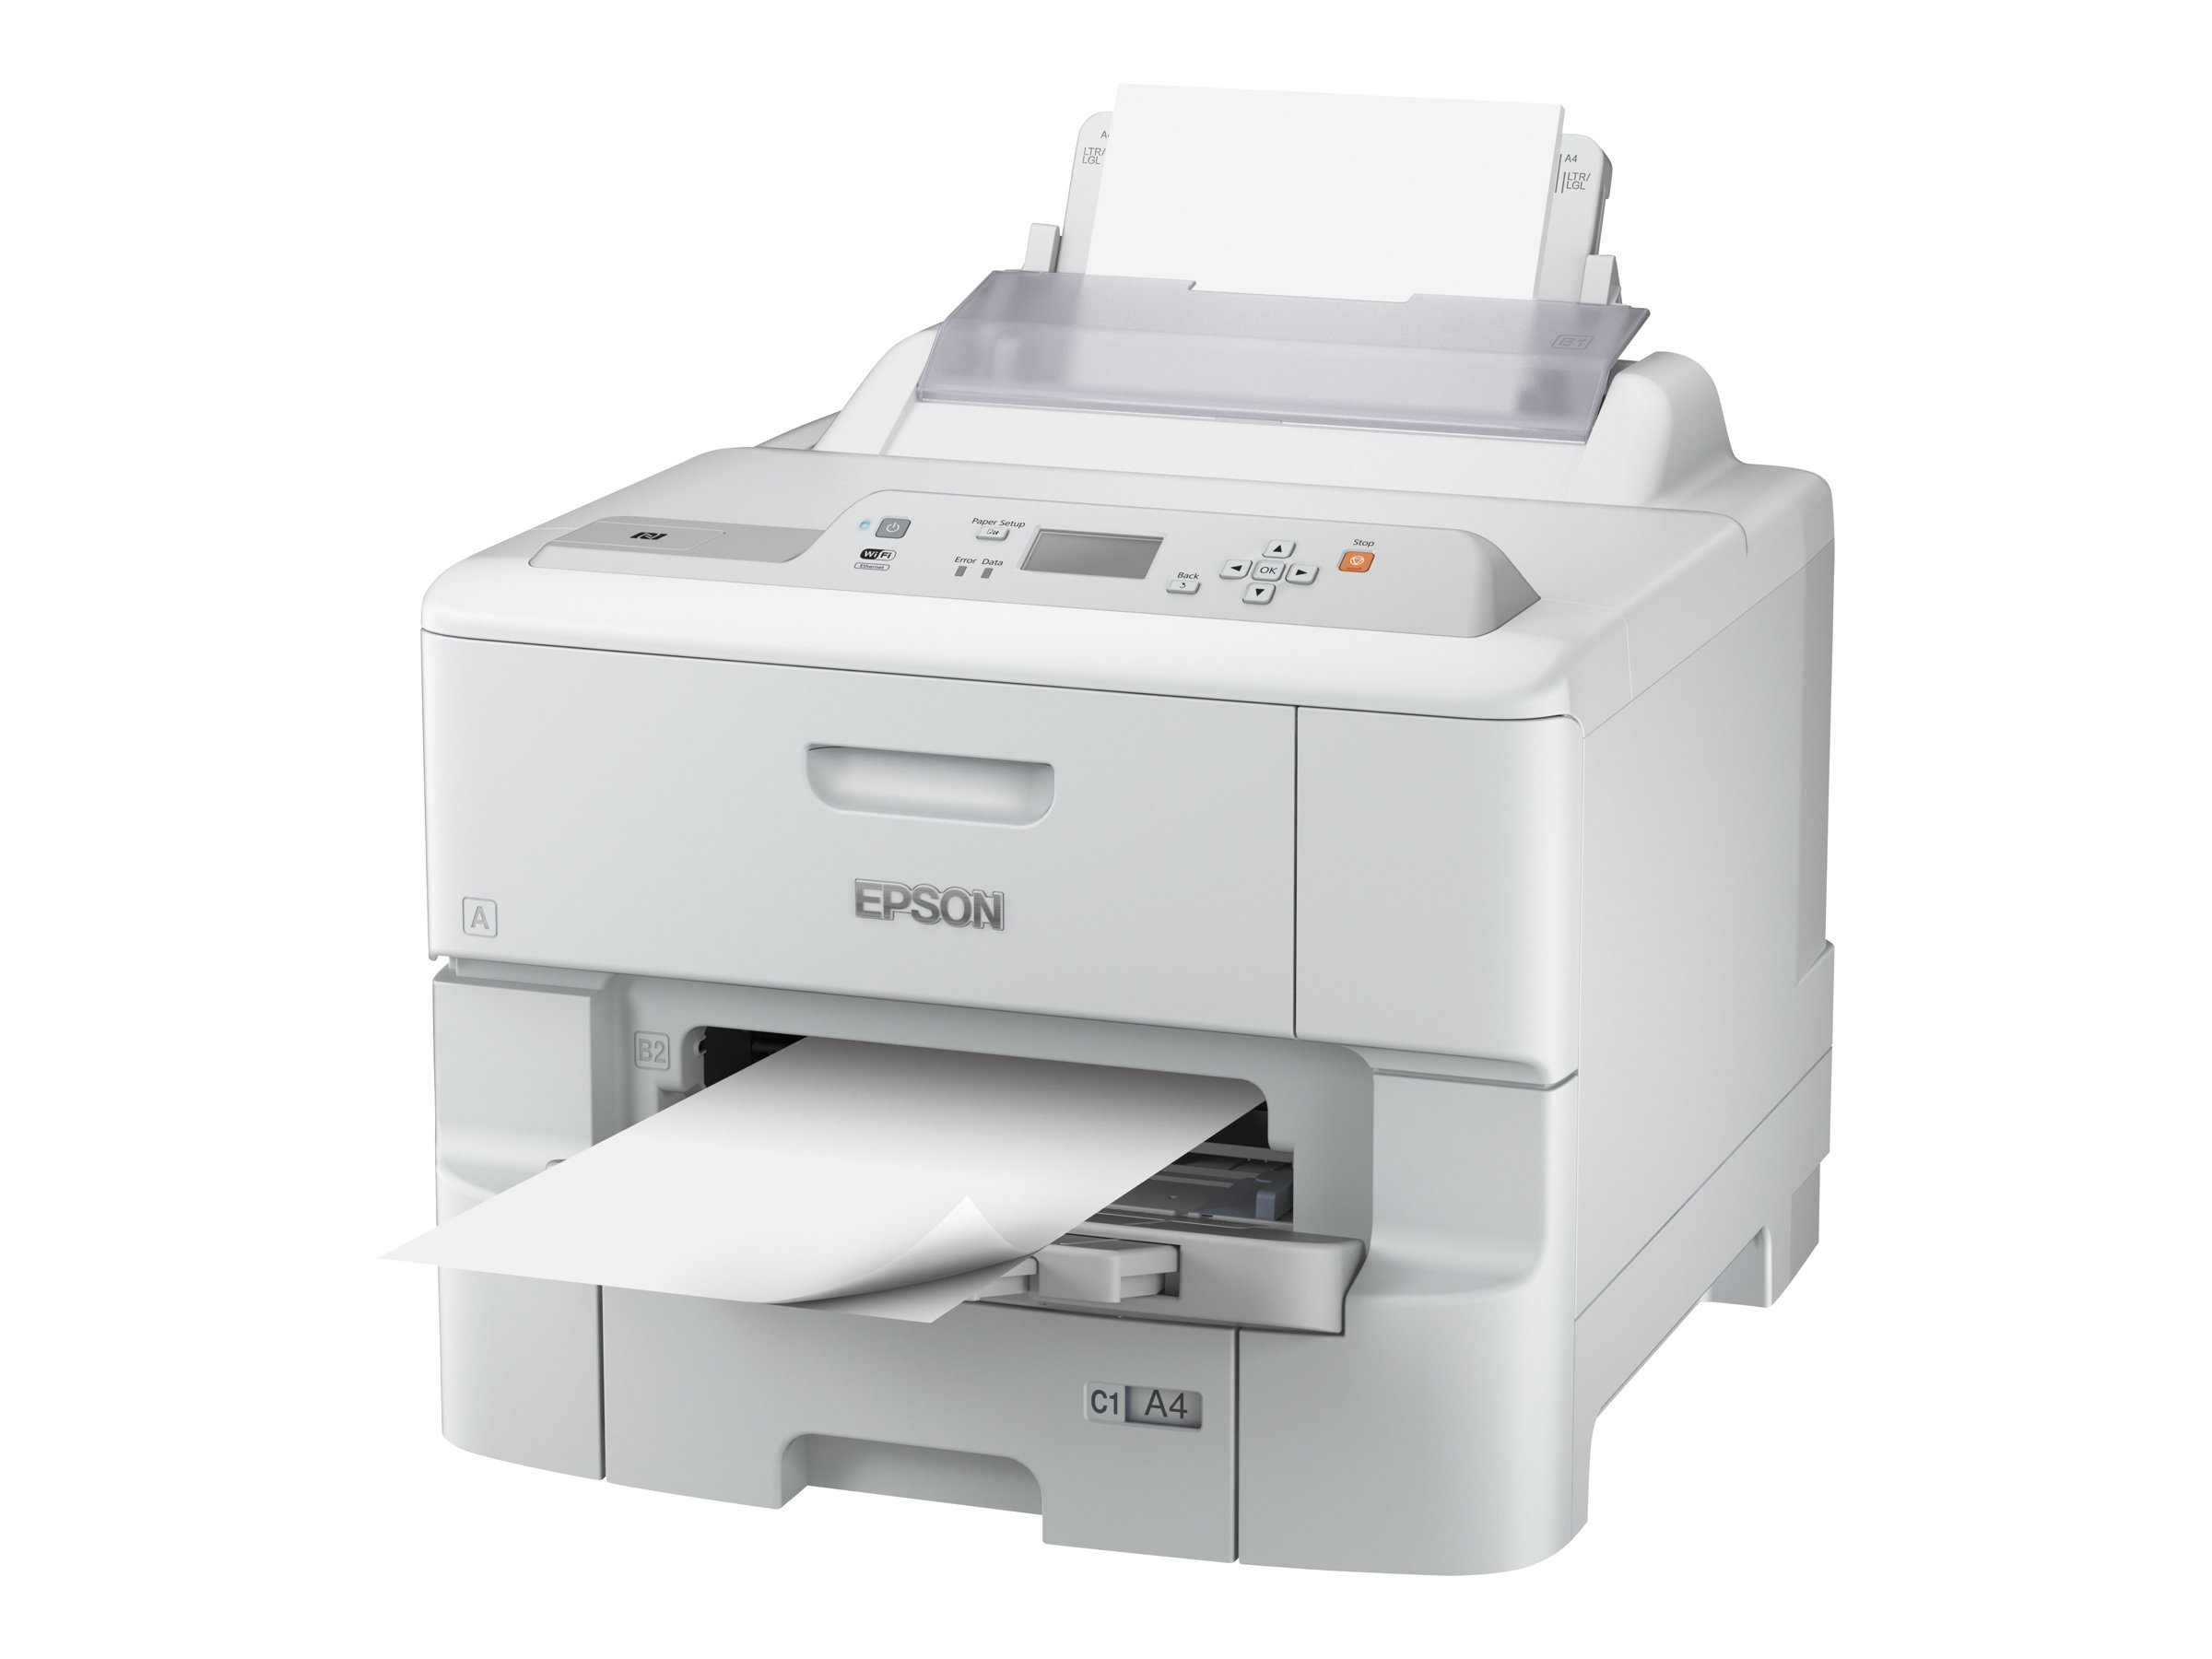 Epson WorkForce Pro WF-6090DW - Drucker - Farbe - Duplex - Tintenstrahl - A4/Legal